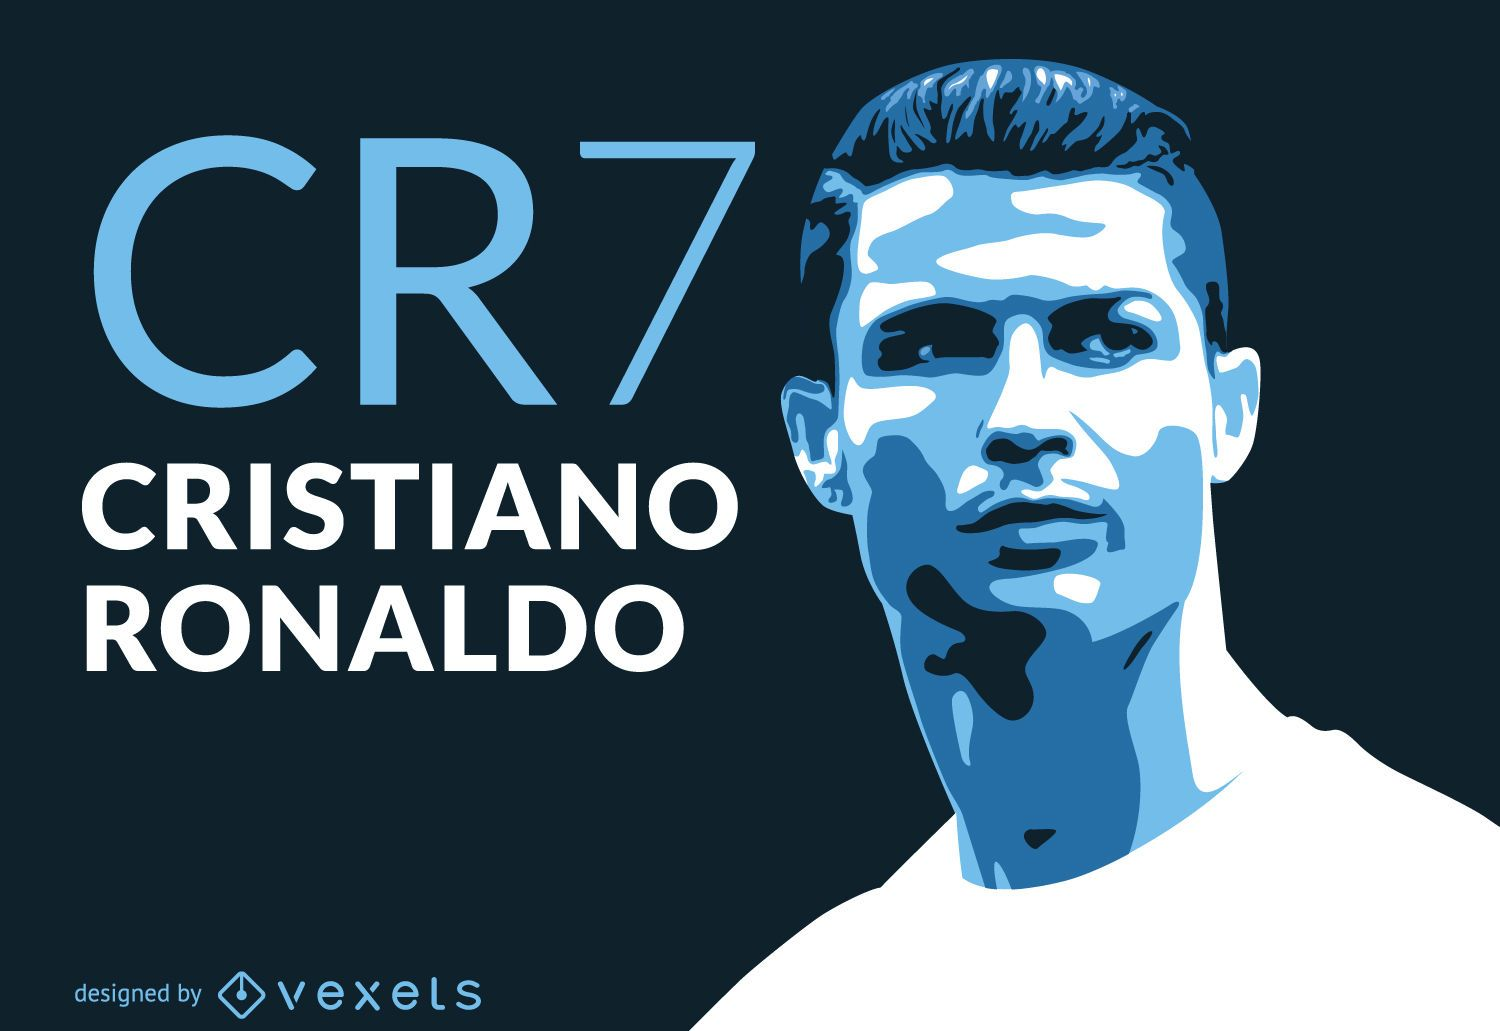 Ronaldo cr7 illustration vector download - Christiano ronaldo logo ...